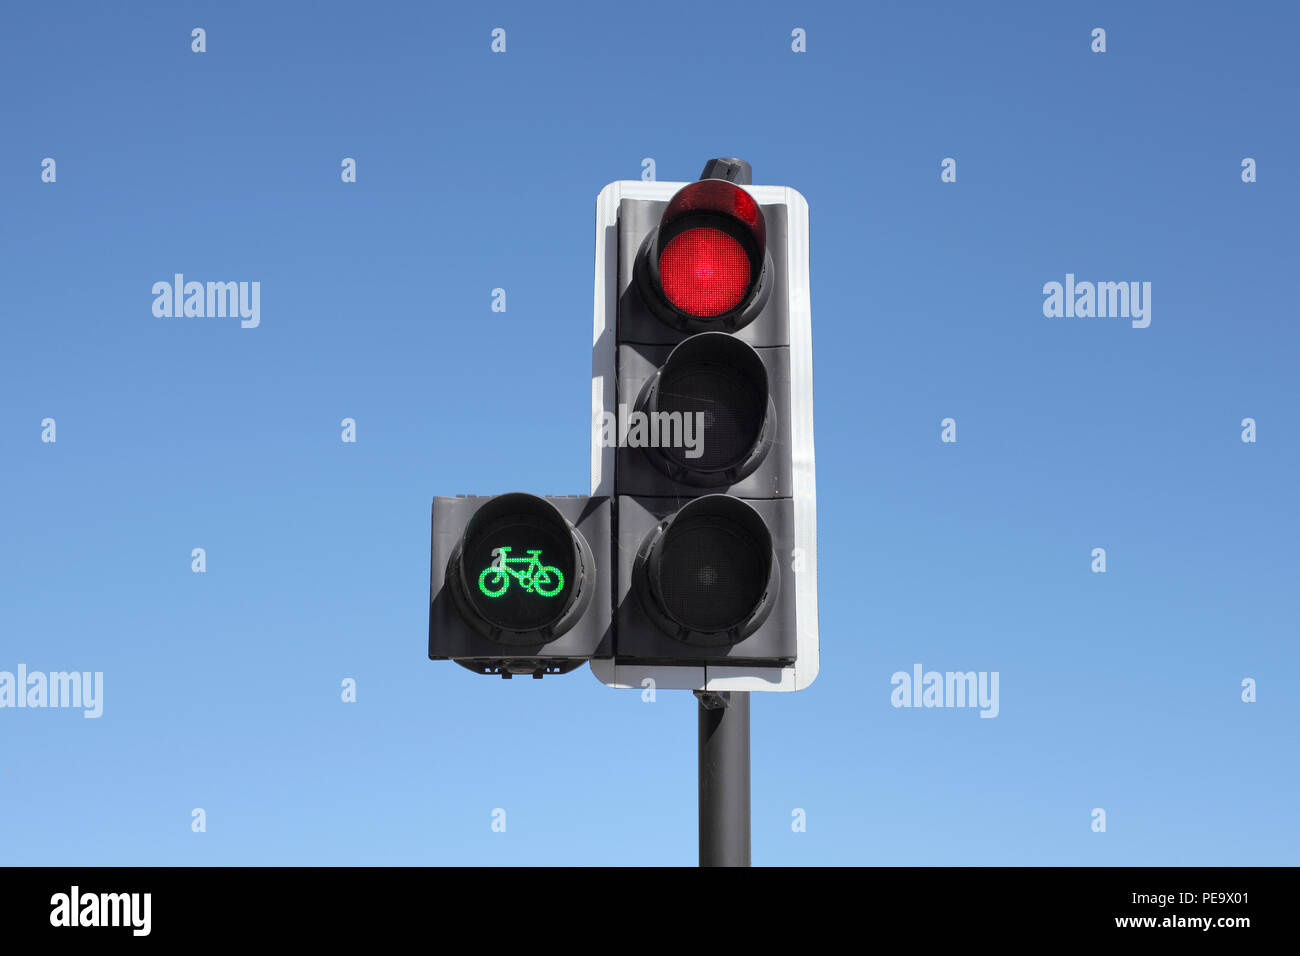 A cycle priority traffic signal. The green light gives cyclists a headstart, allowing them to cross the junction before the rest of the traffic. - Stock Image